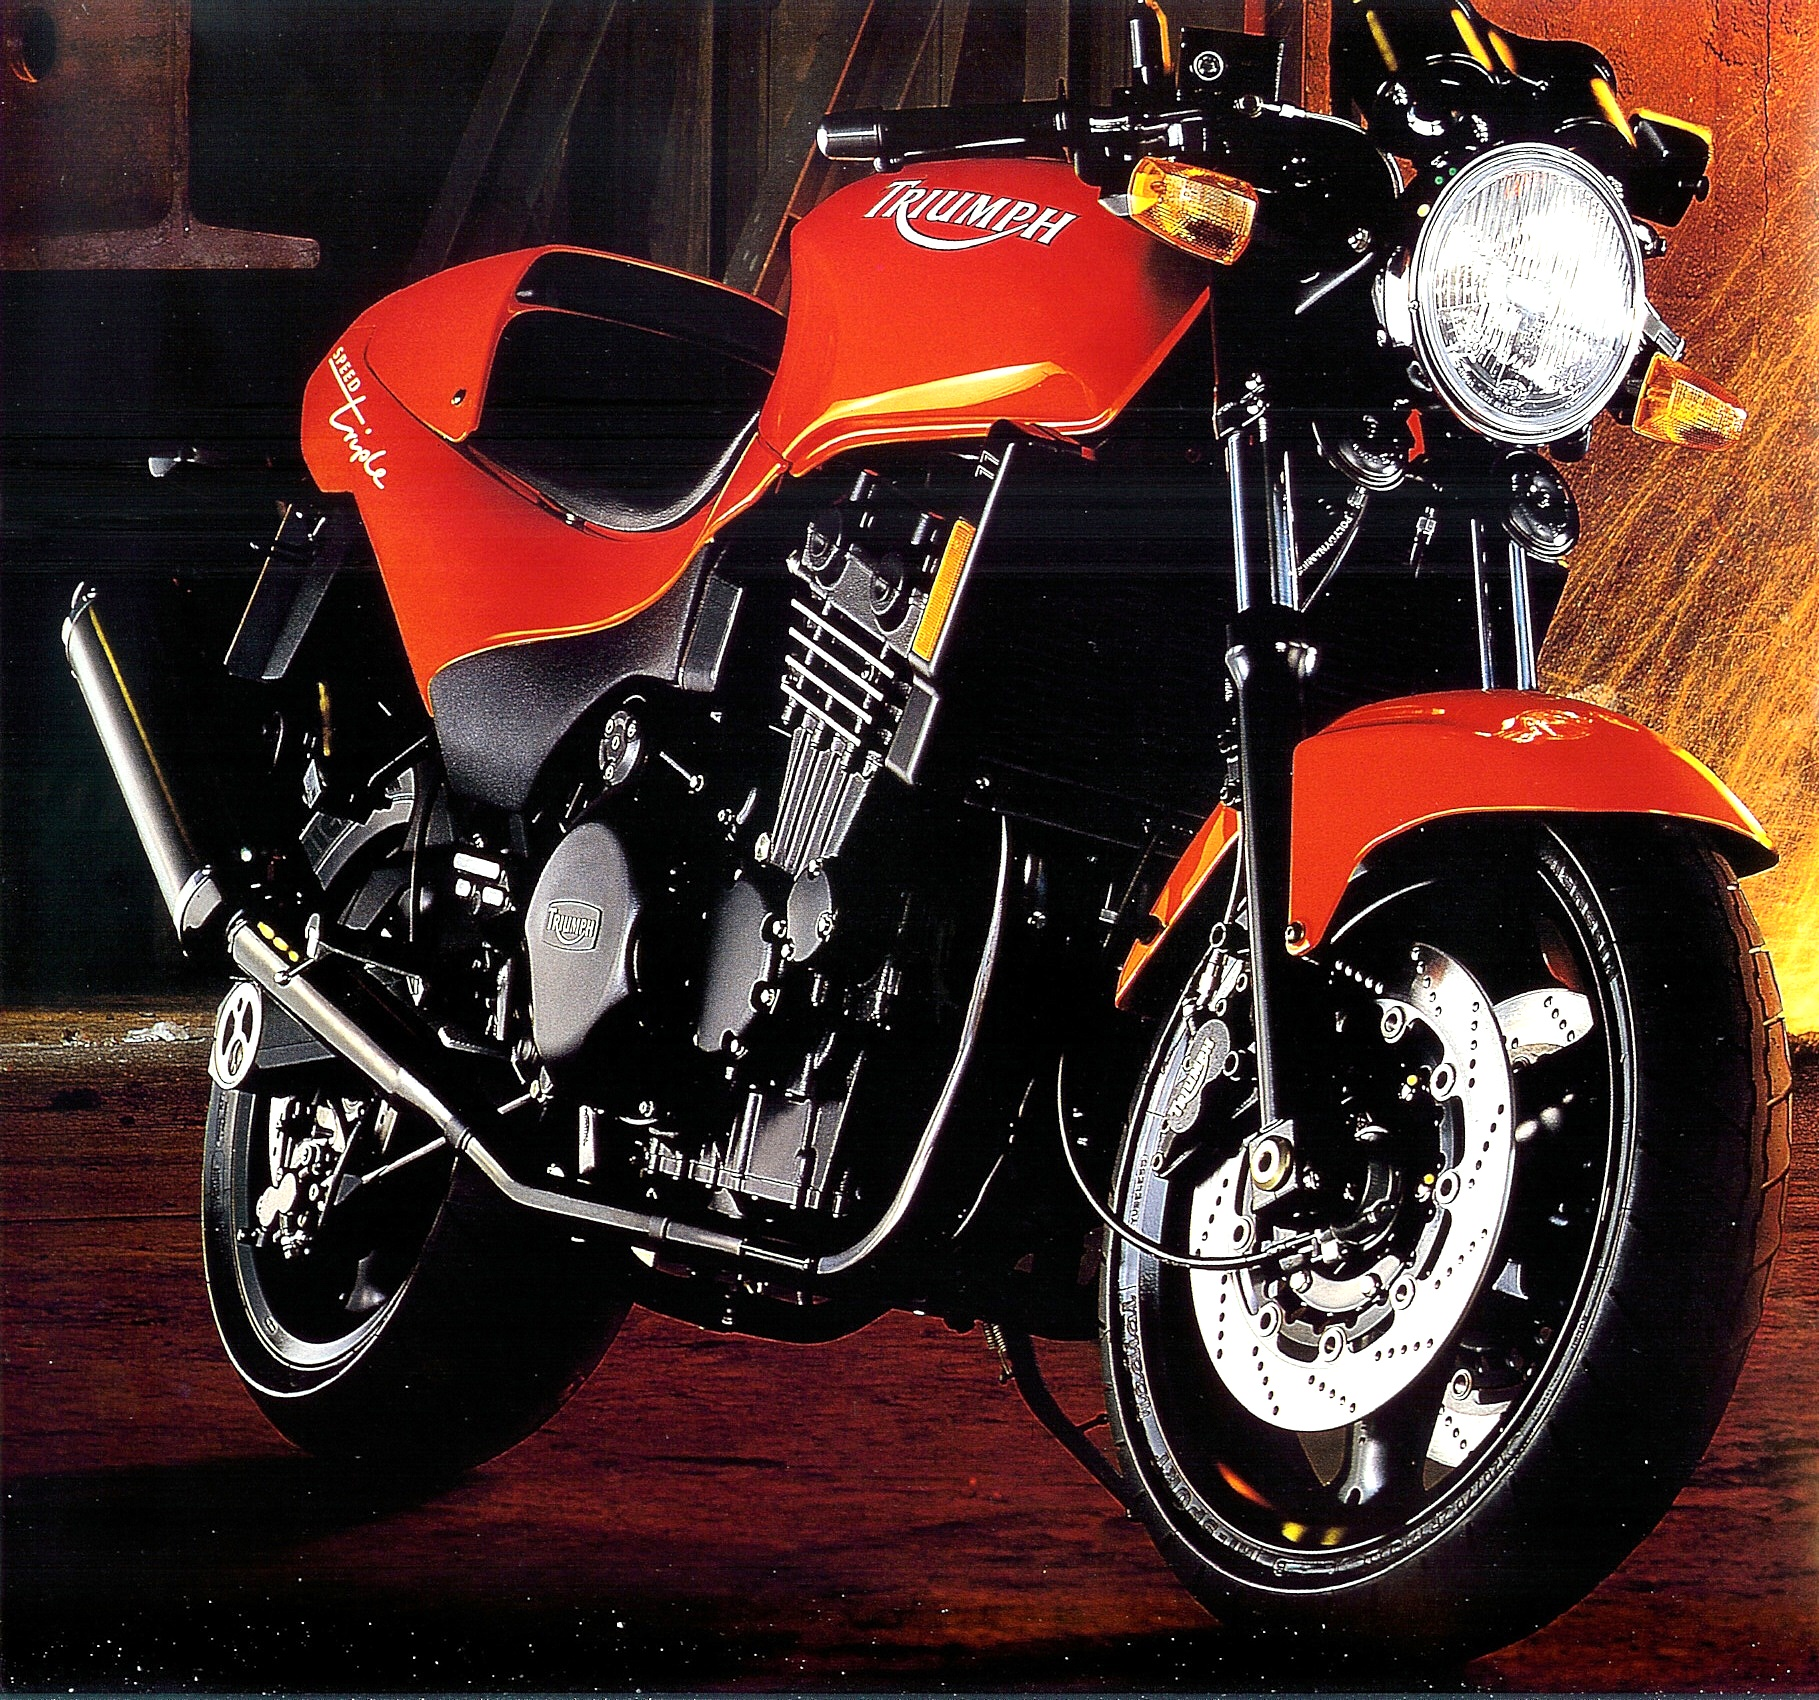 Triumph Speed Triple 900 1996 images #159239